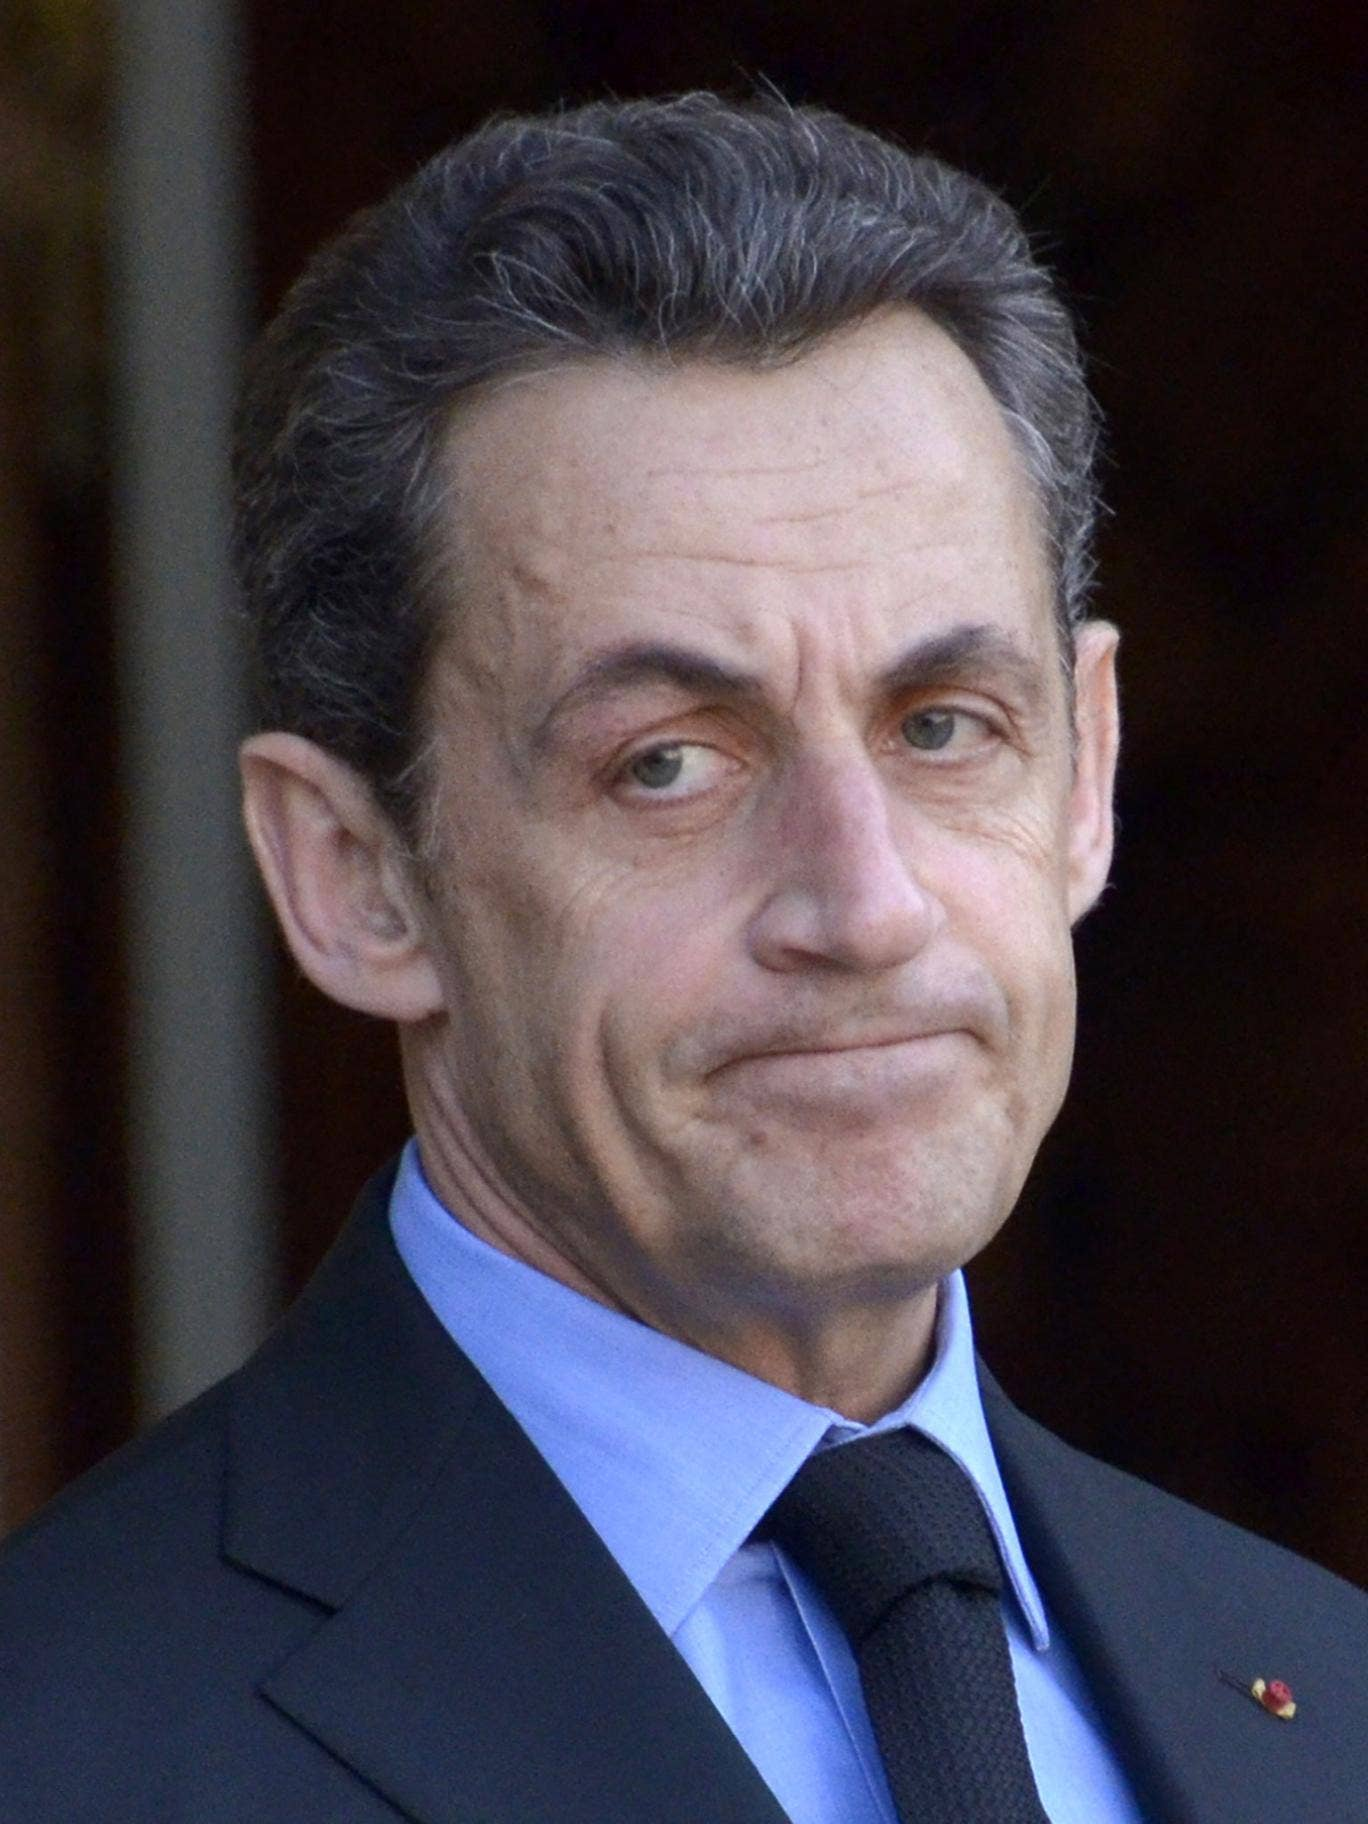 Former French president Nicolas Sarkozy returns to the political stage to appeal for support for his debt-ridden party